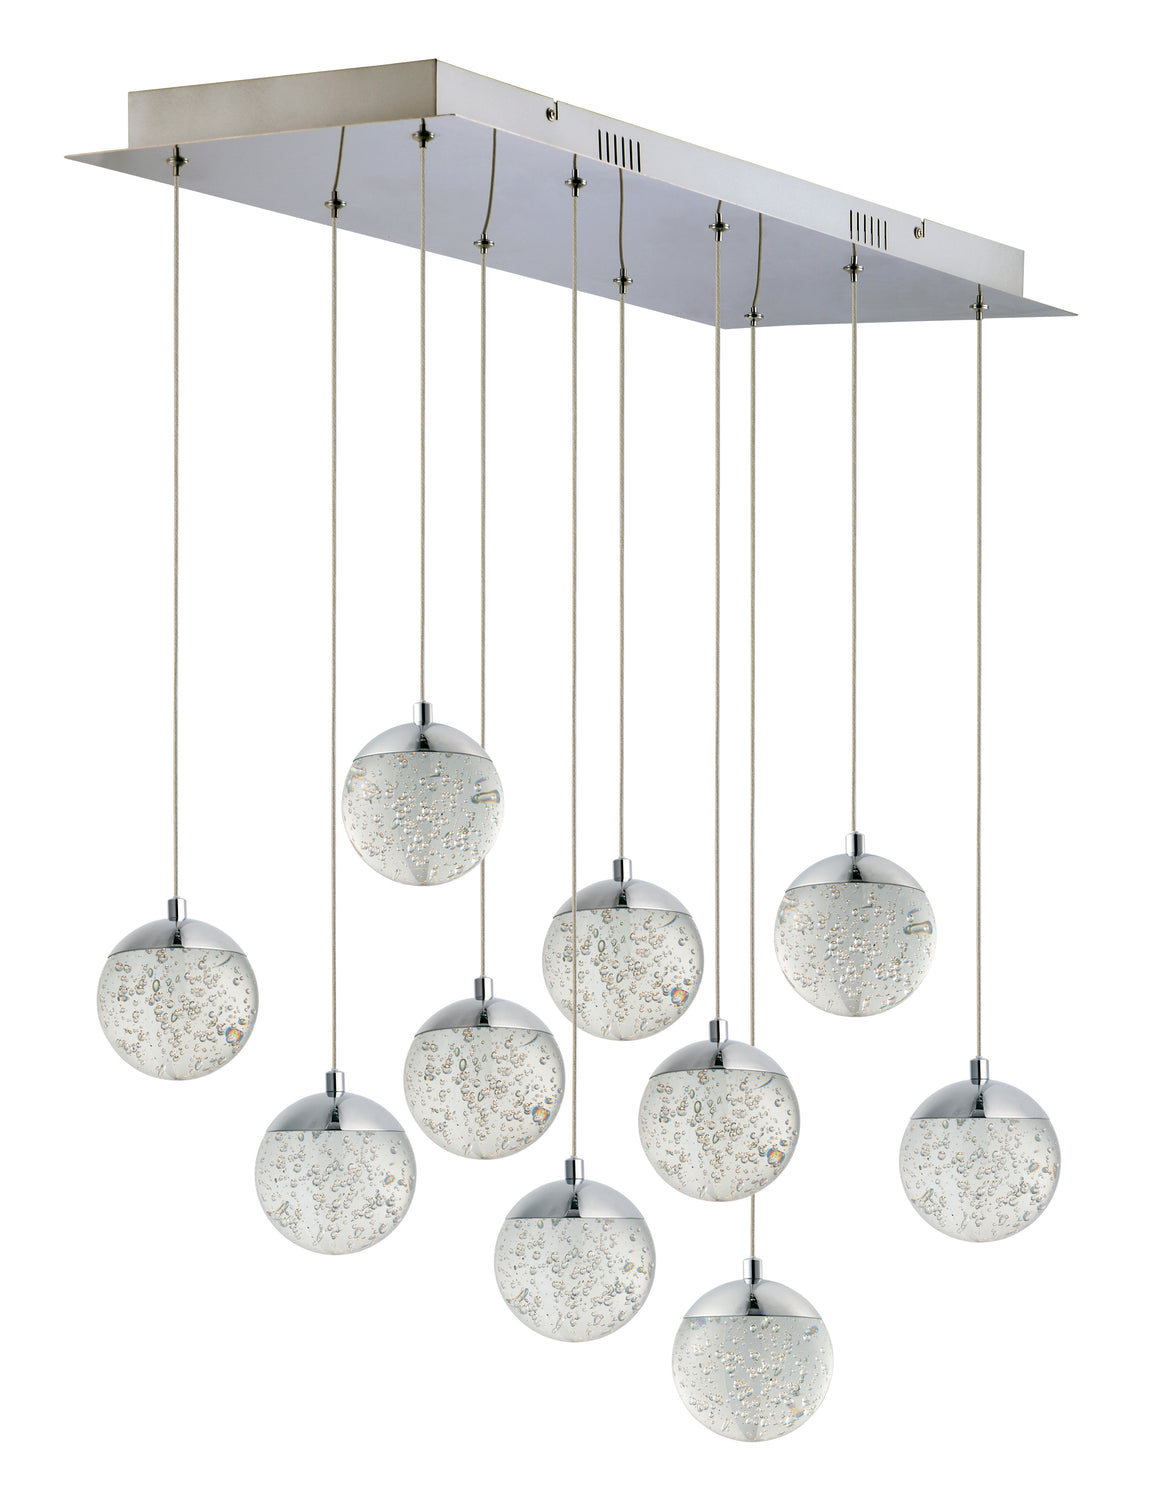 Orb 10-Light LED Pendant